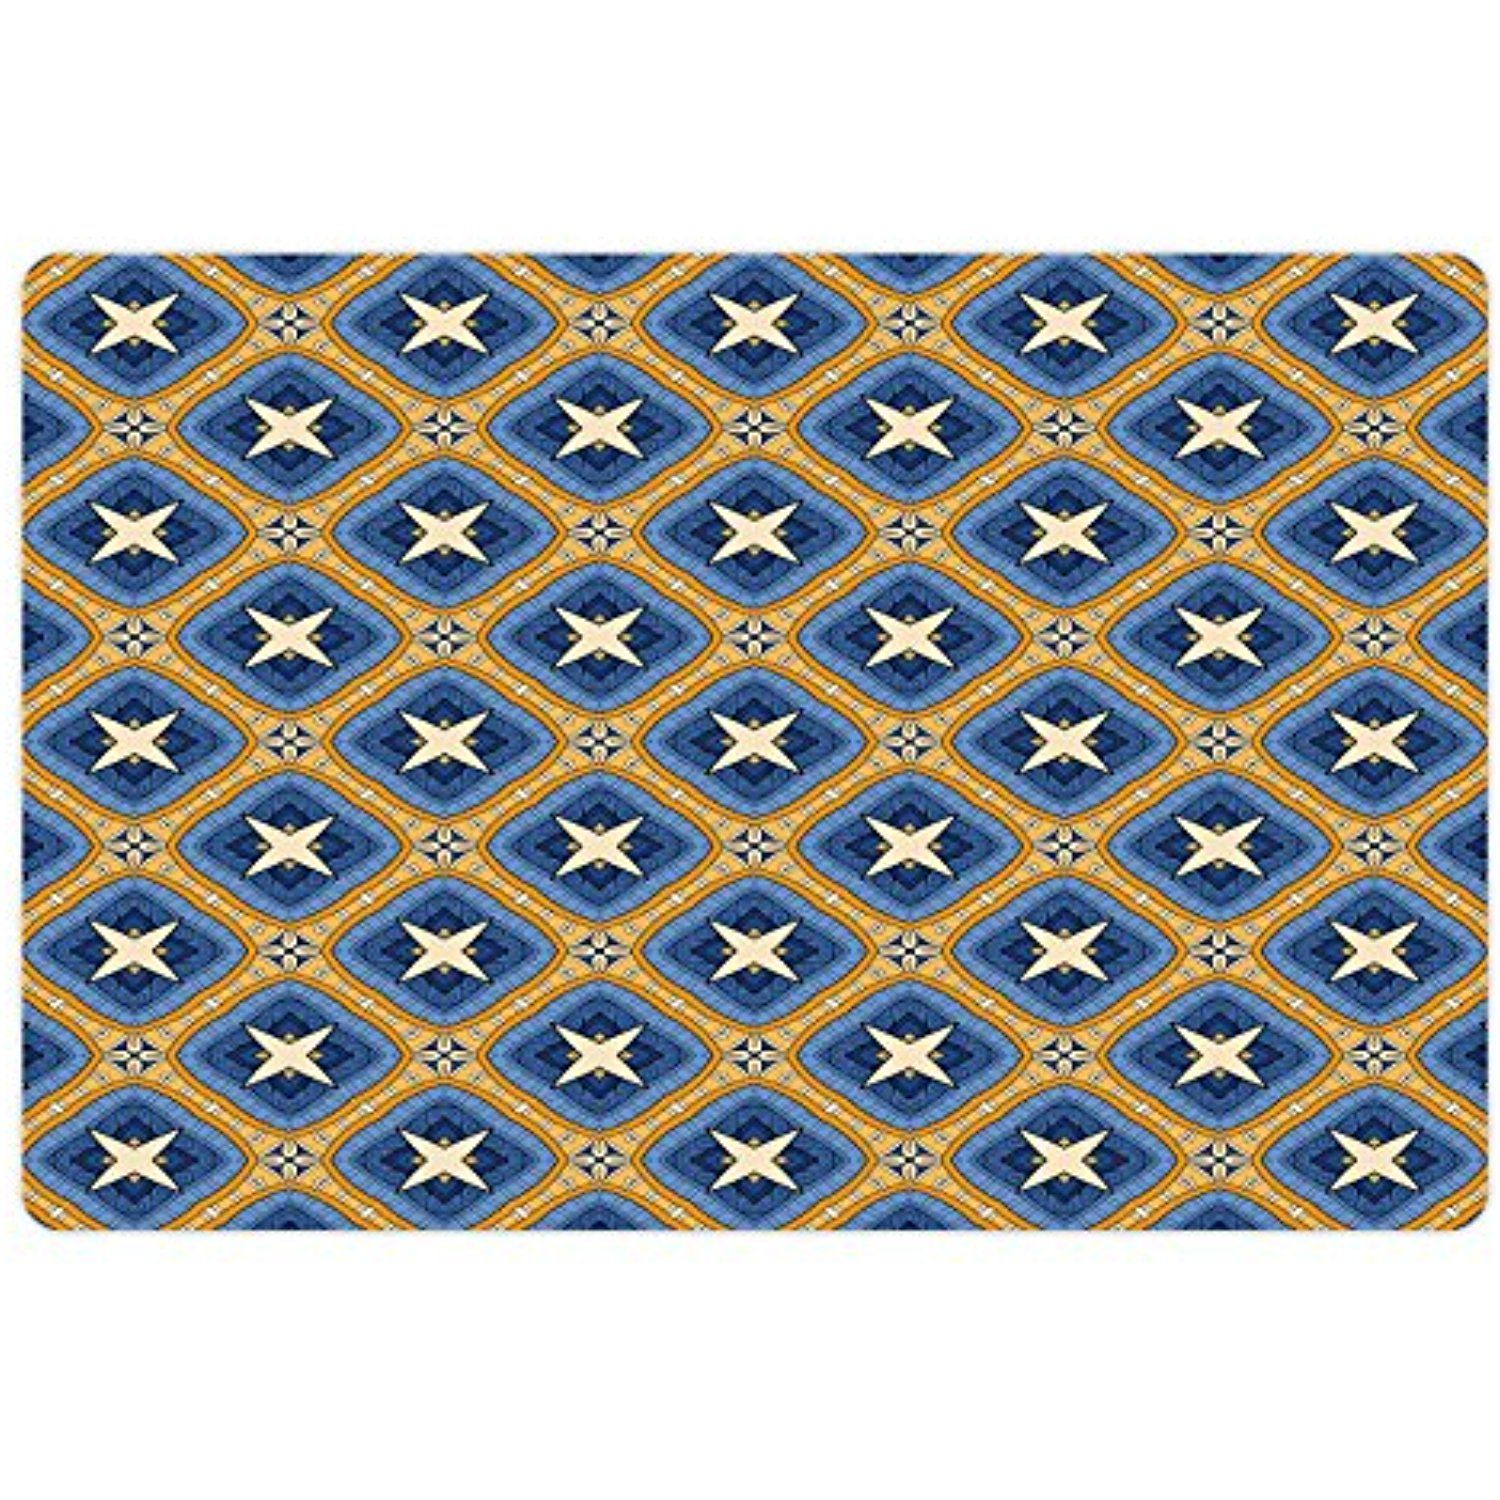 Ethnic Pet Mats for Food and Water by Ambesonne, Asian Vintage Tile ...